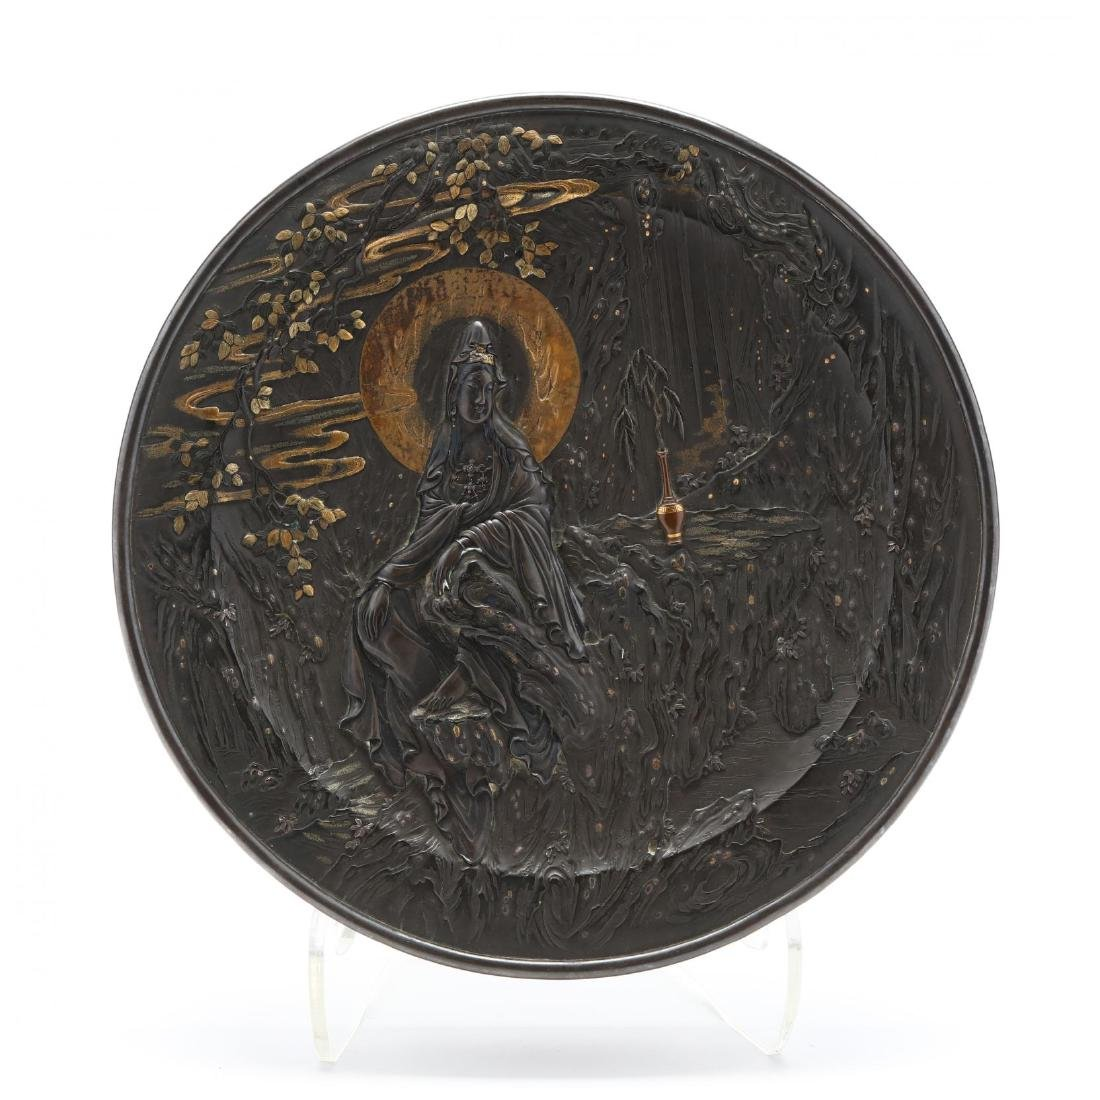 A Bronze and Mixed Metals Circular Box with Bodhisattva